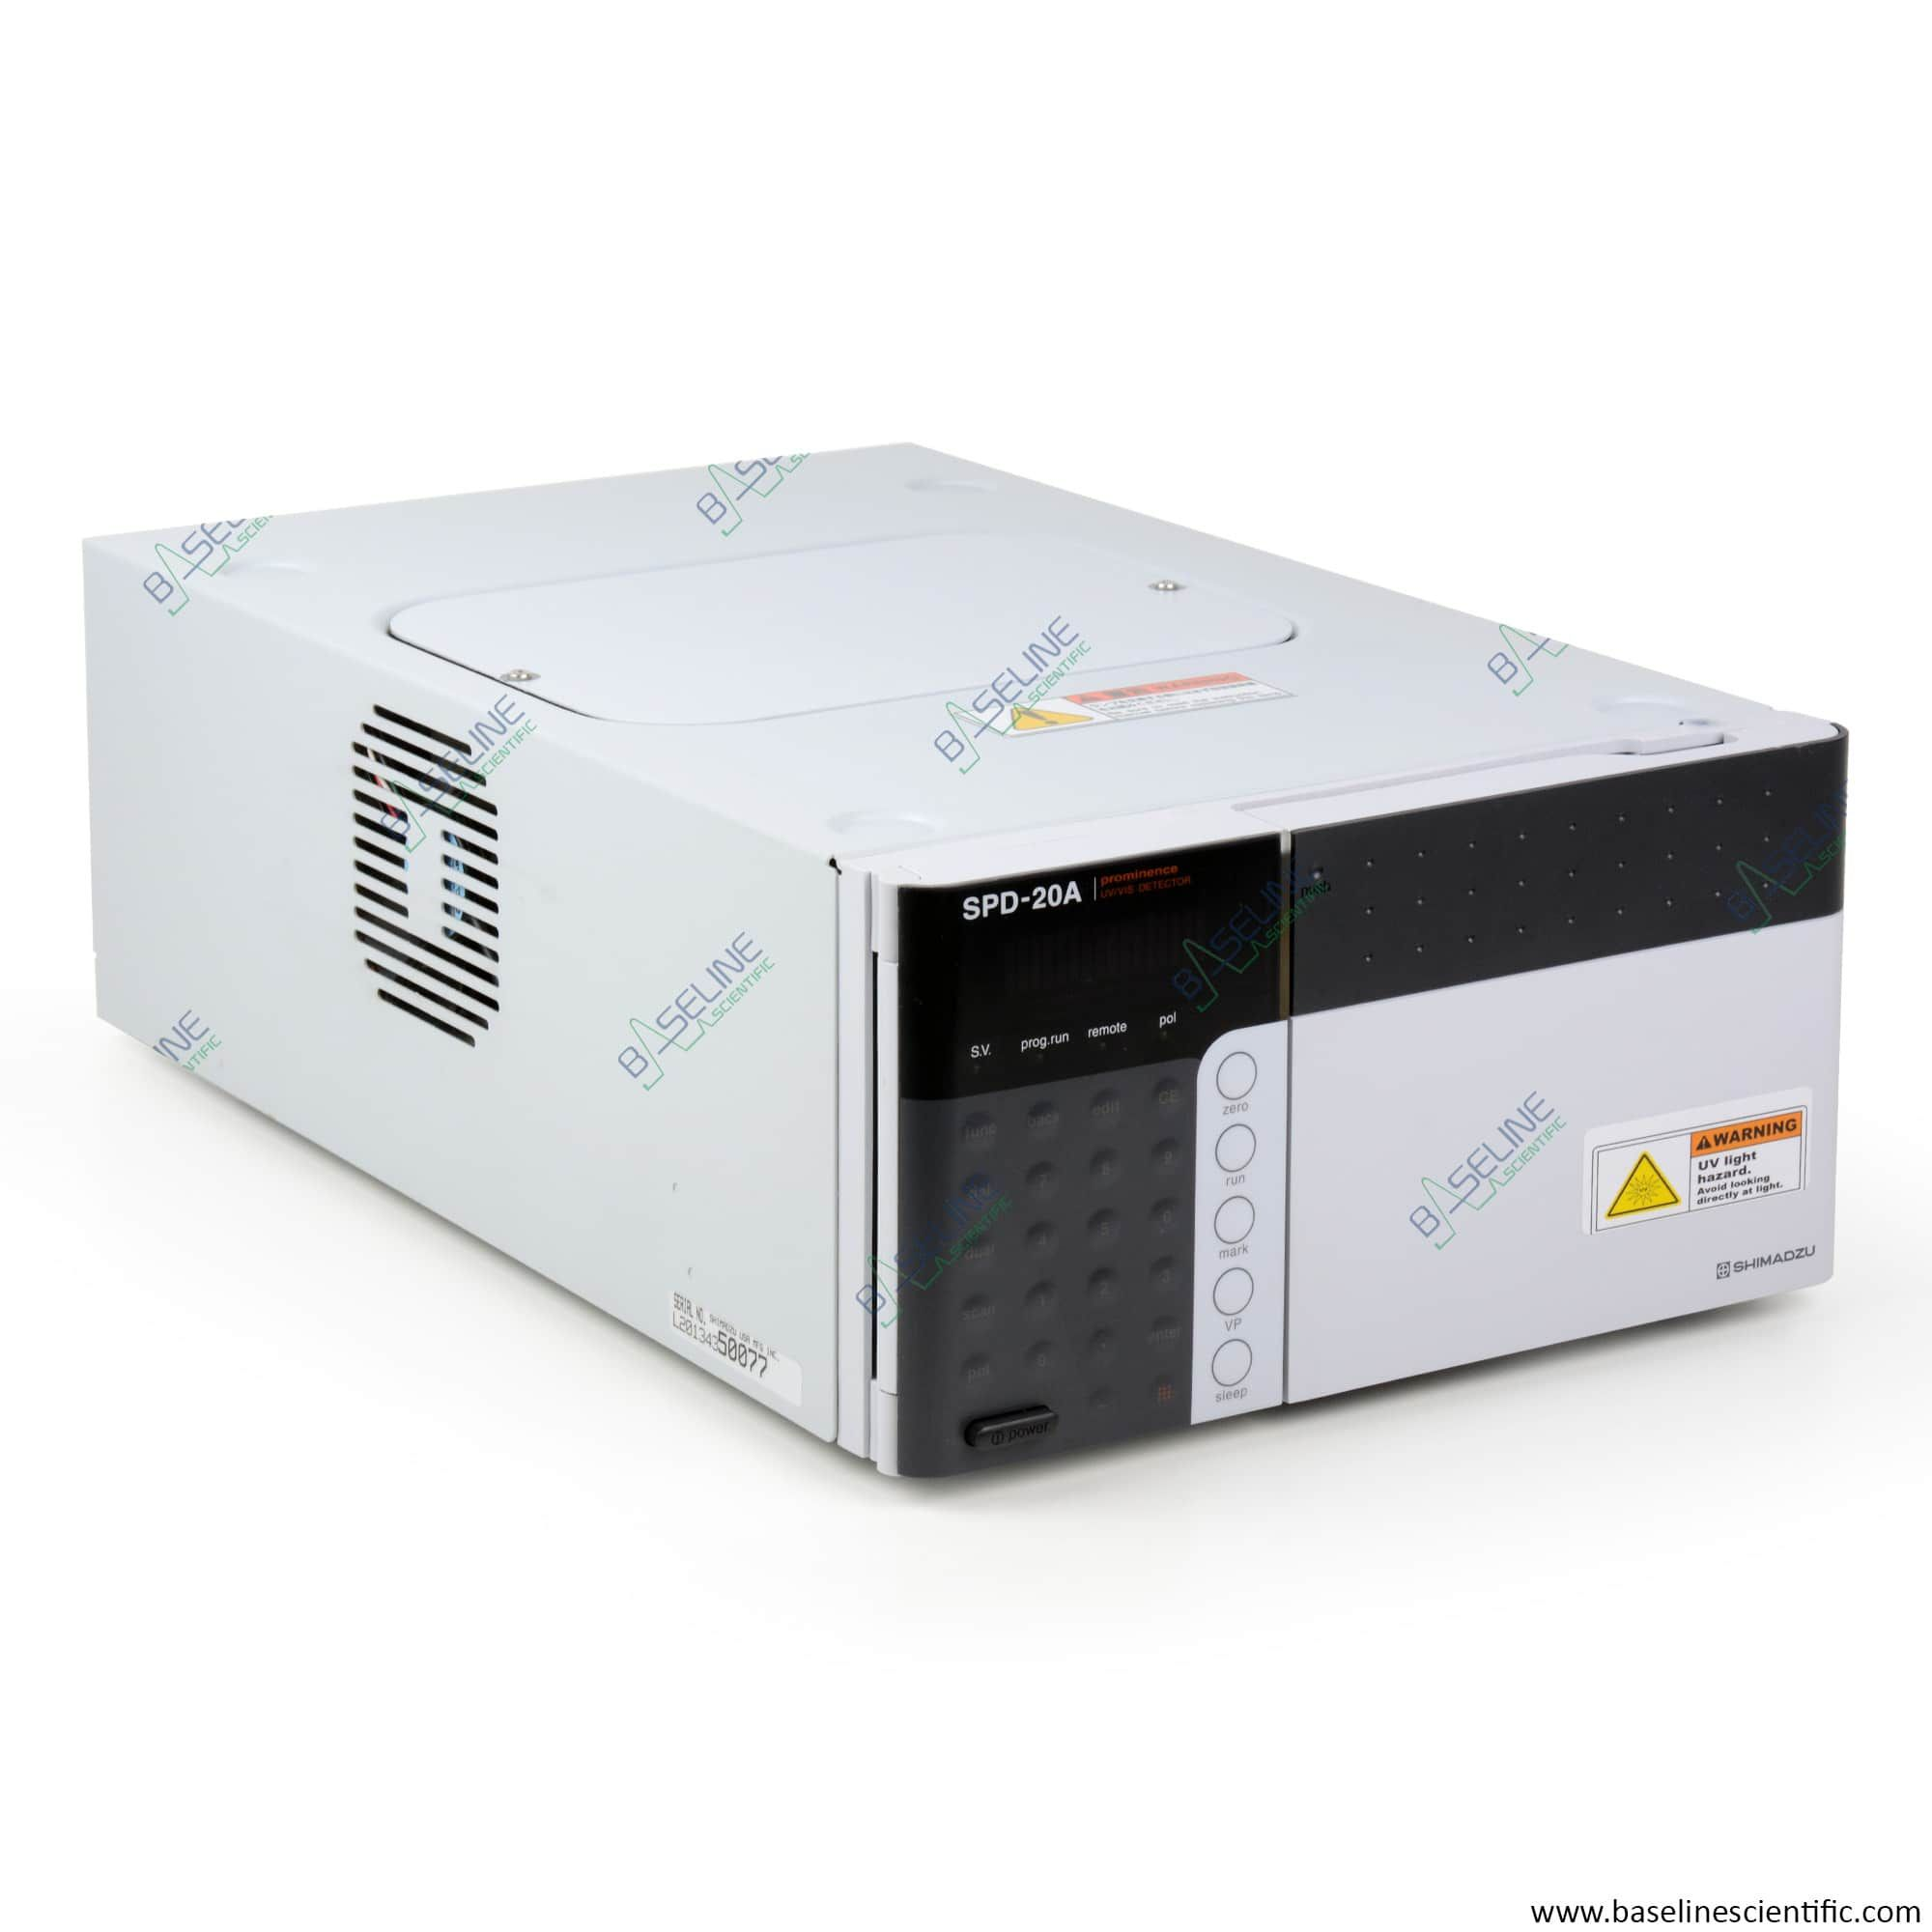 Refurbished Shimadzu SPD-20A Prominence UV-VIS Detector with ONE YEAR WARRANTY